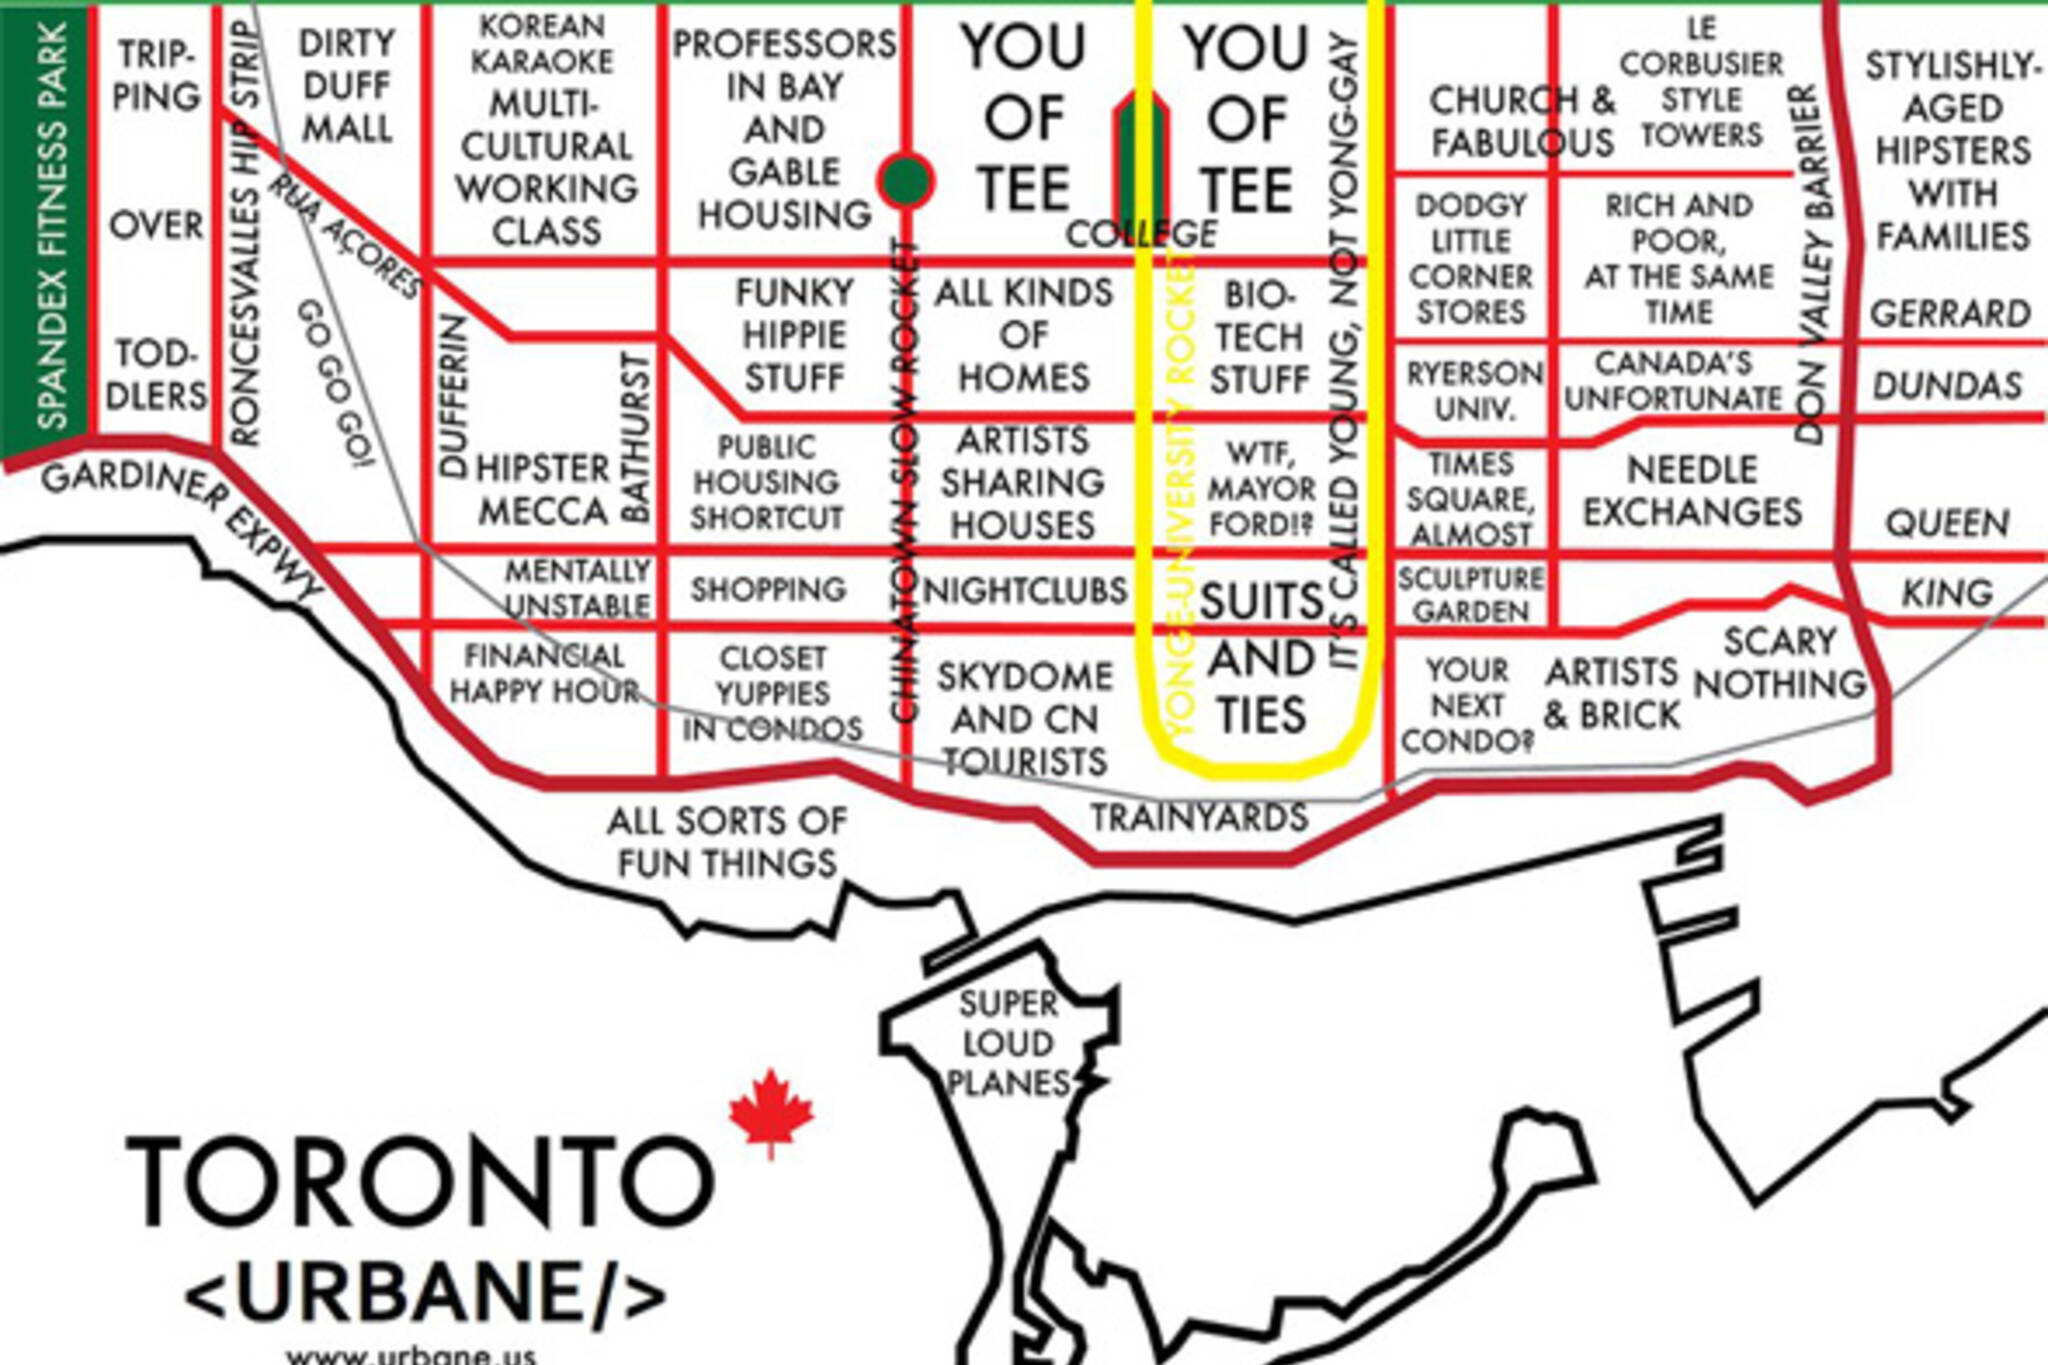 New Map Charts Toronto Neighbourhoods By Stereotype